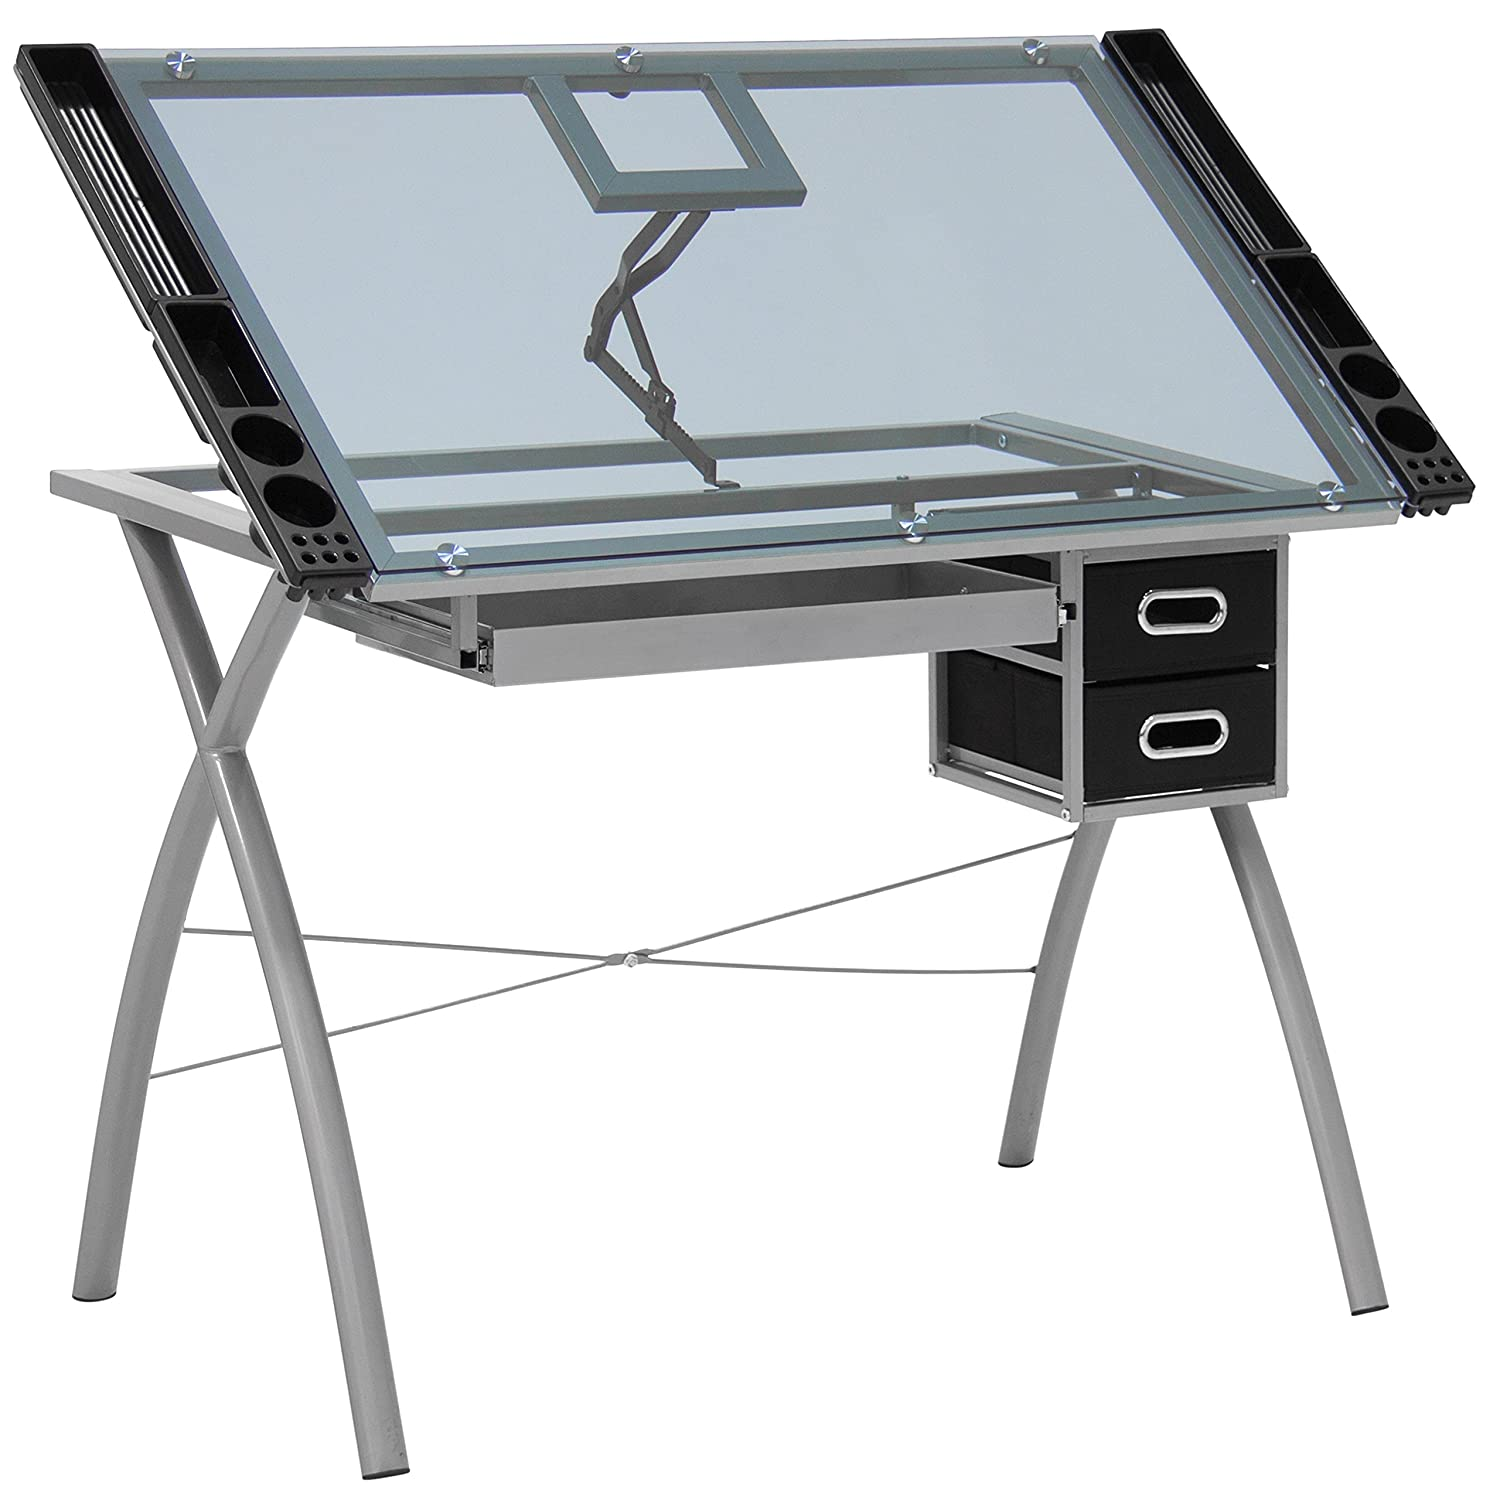 Best Choice Products Office Drawing Desk Station Tempered Glass Adjustable Drafting  Table W/ Drawers